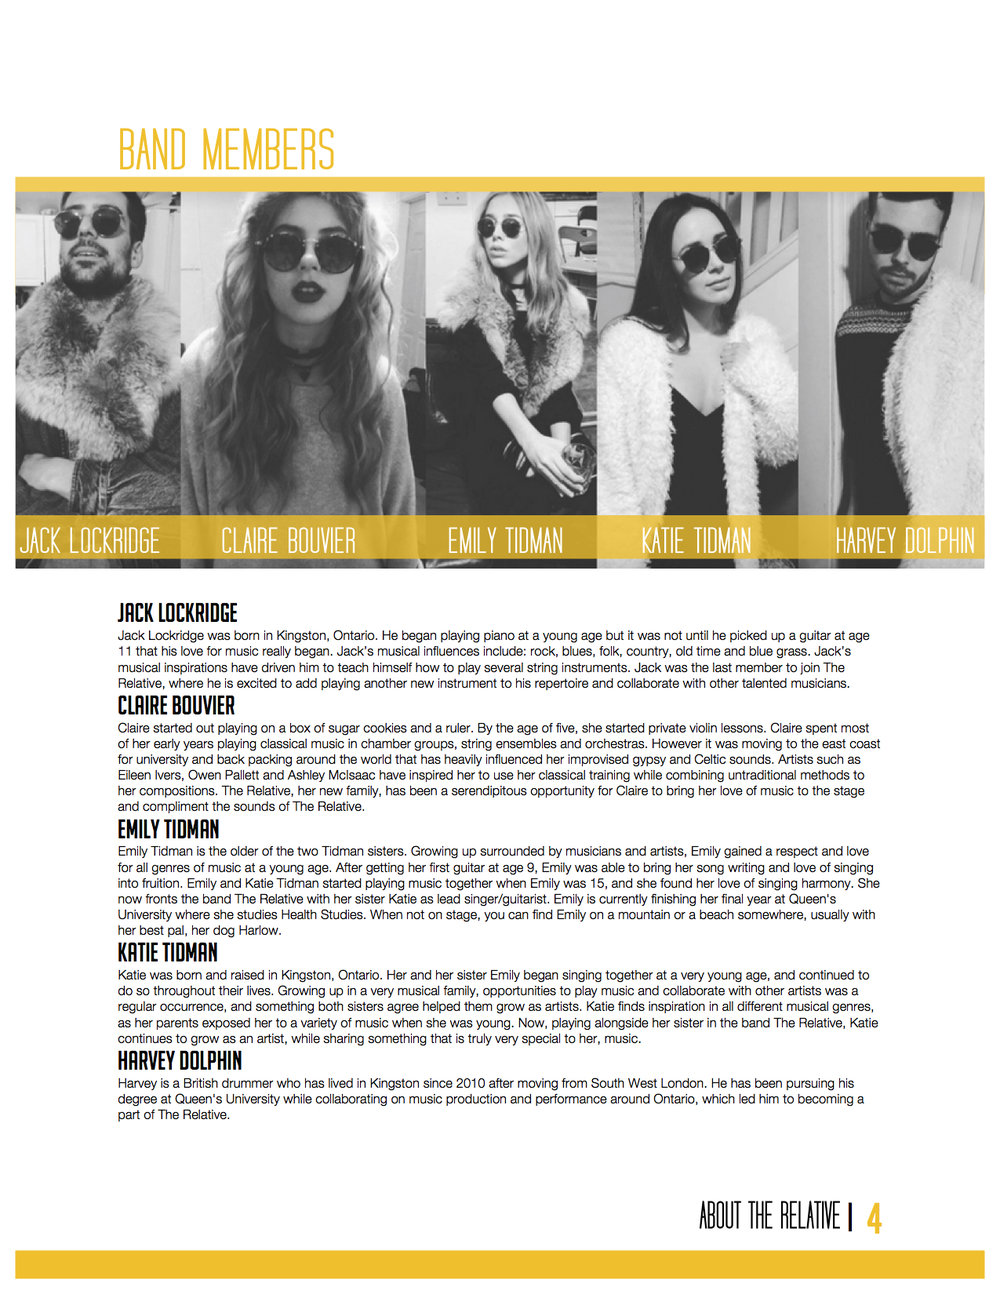 The Relative_Press Kit_Page 4.jpg